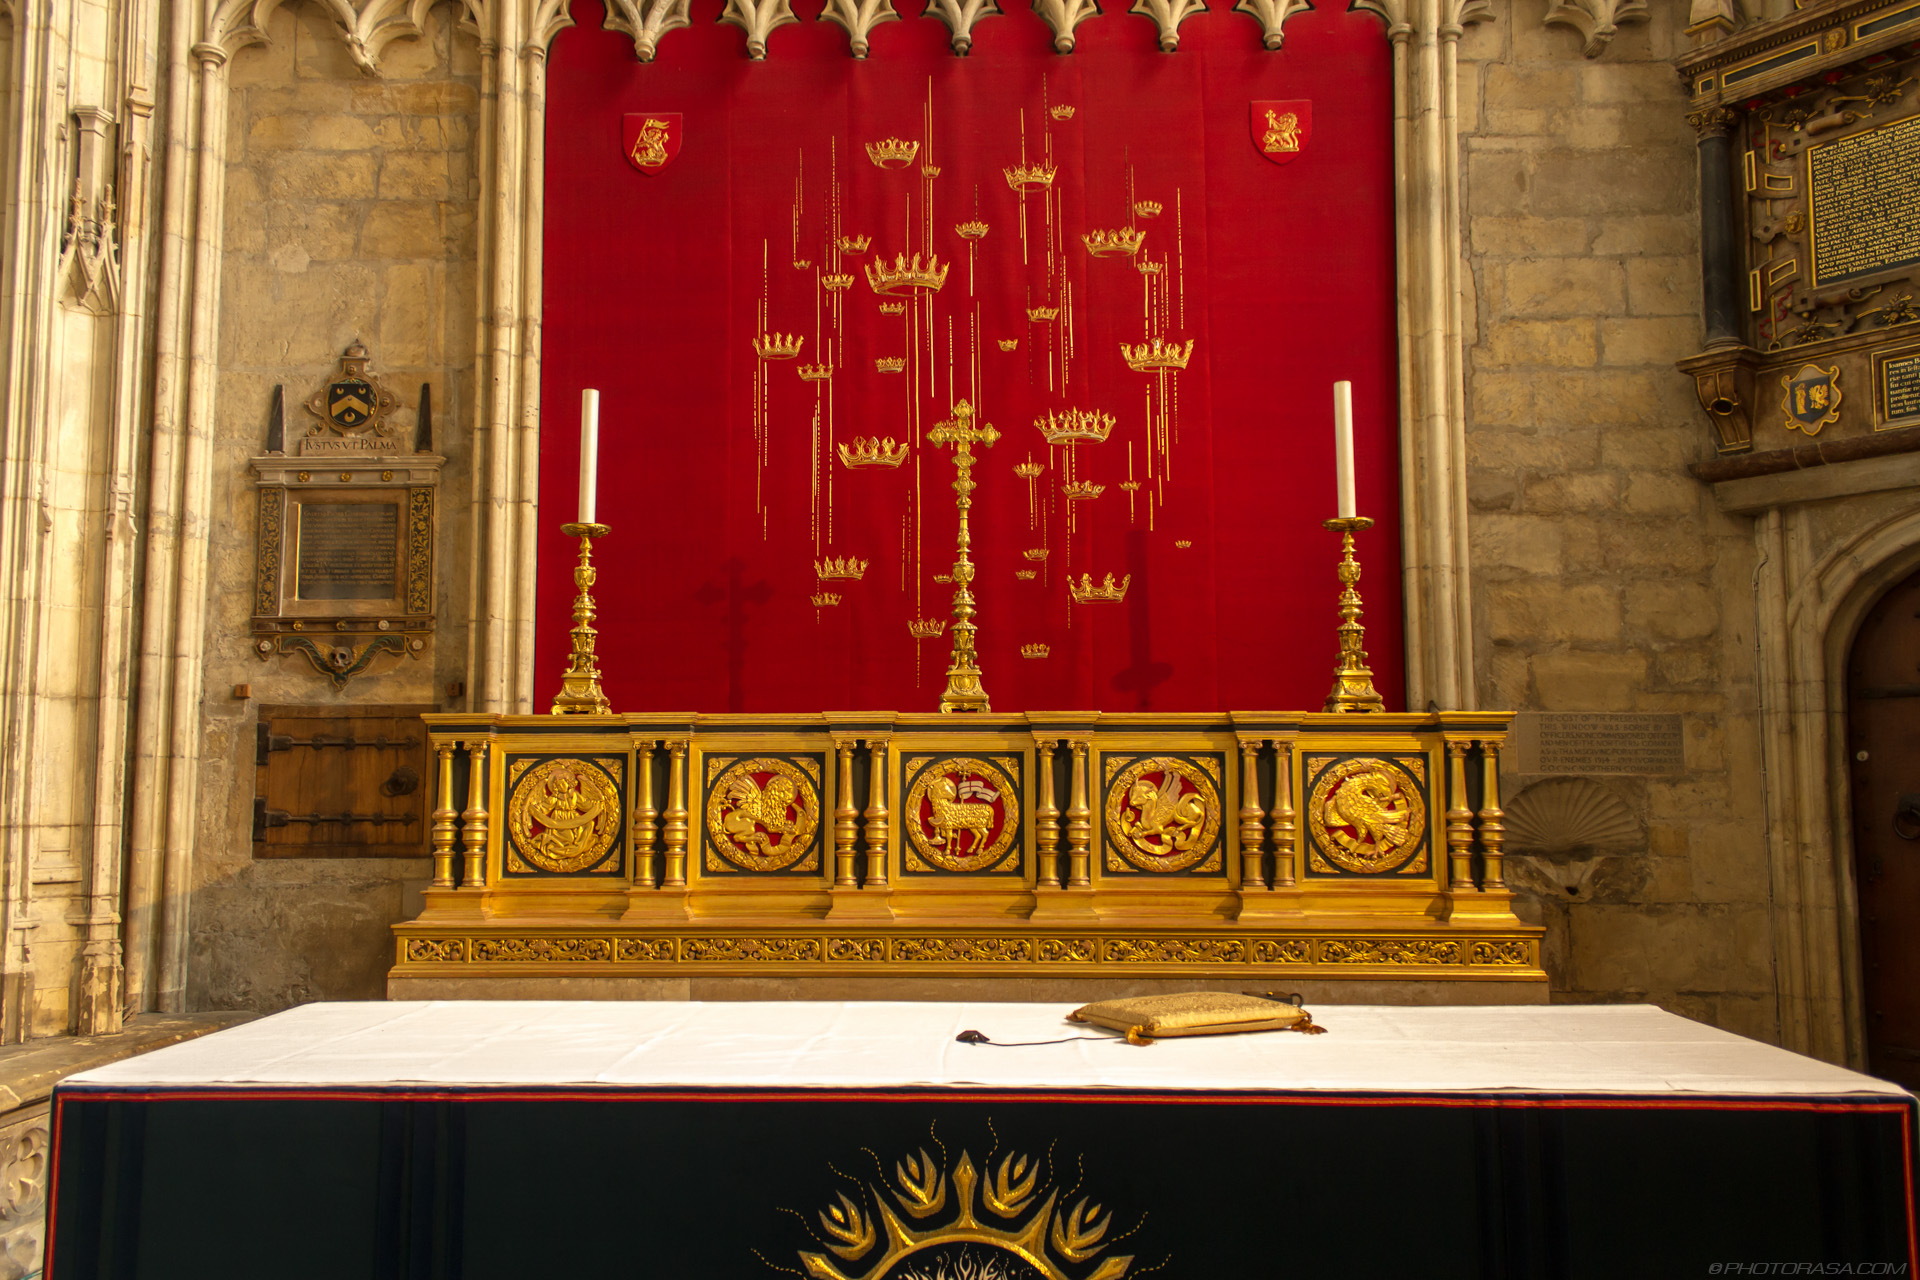 http://photorasa.com/yorkminster-cathedral/all-saints-chapel-altar/